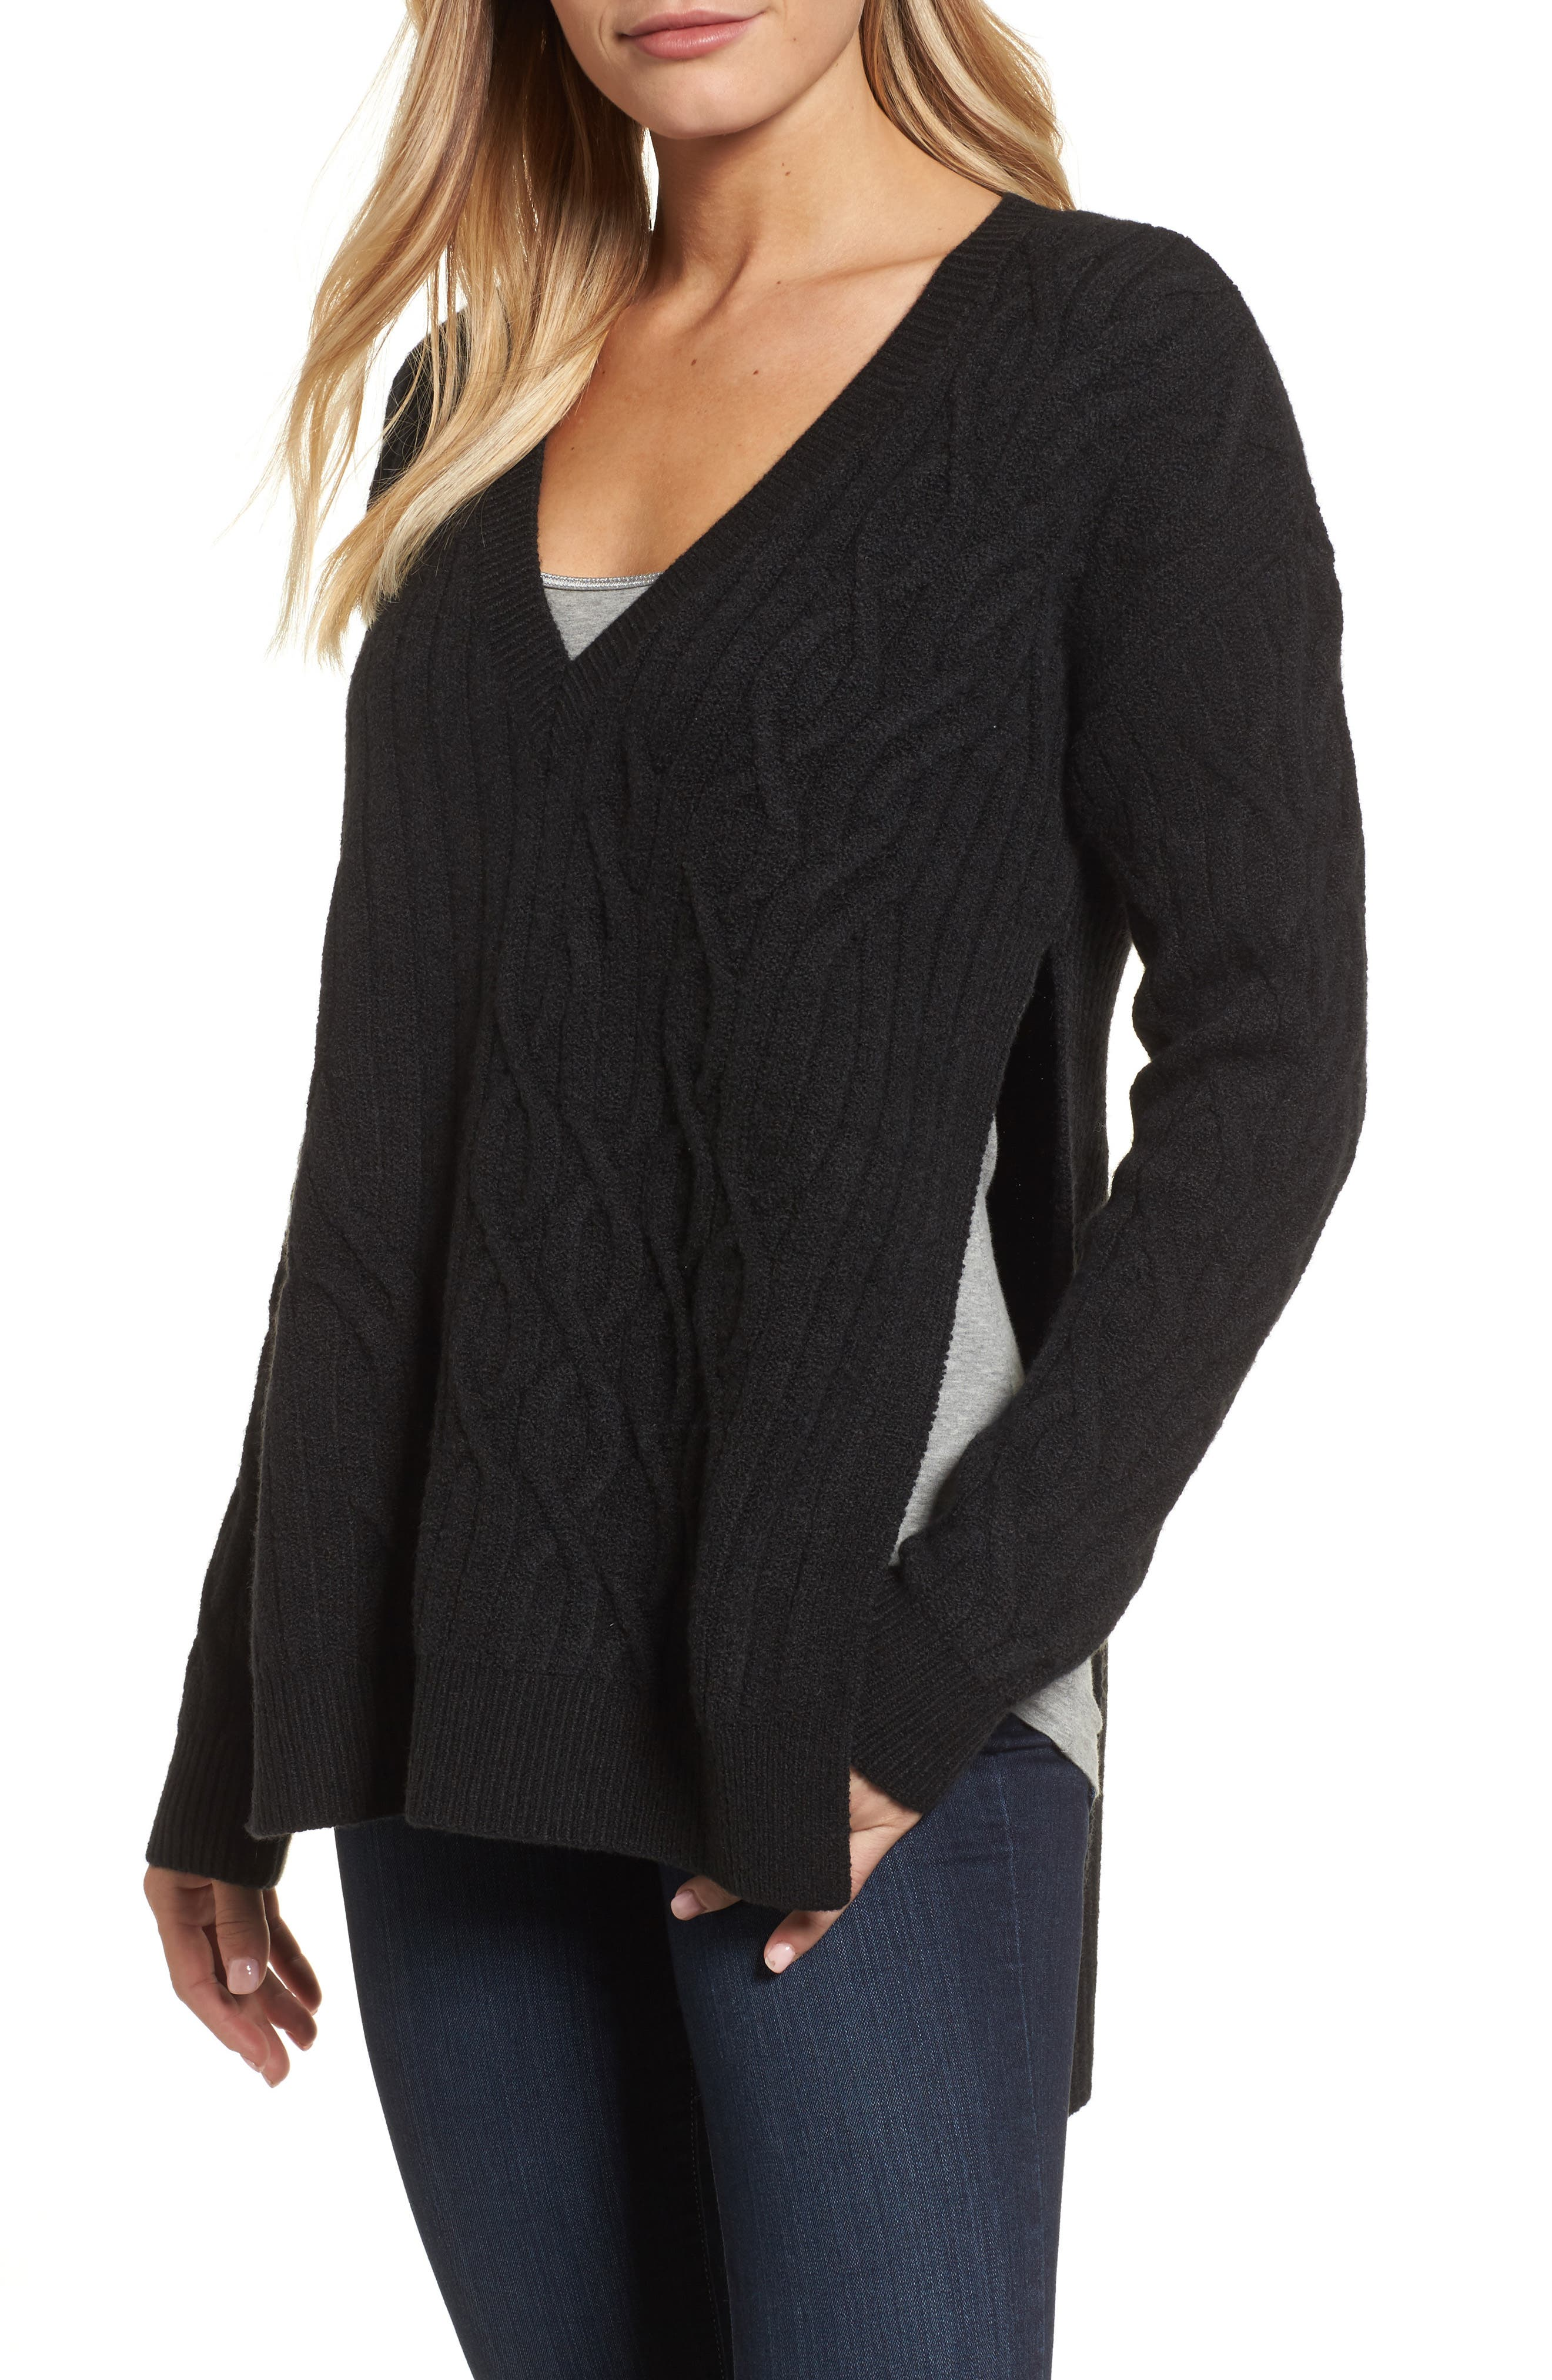 Kenneth Cole New York Irregular Cable Knit Sweater